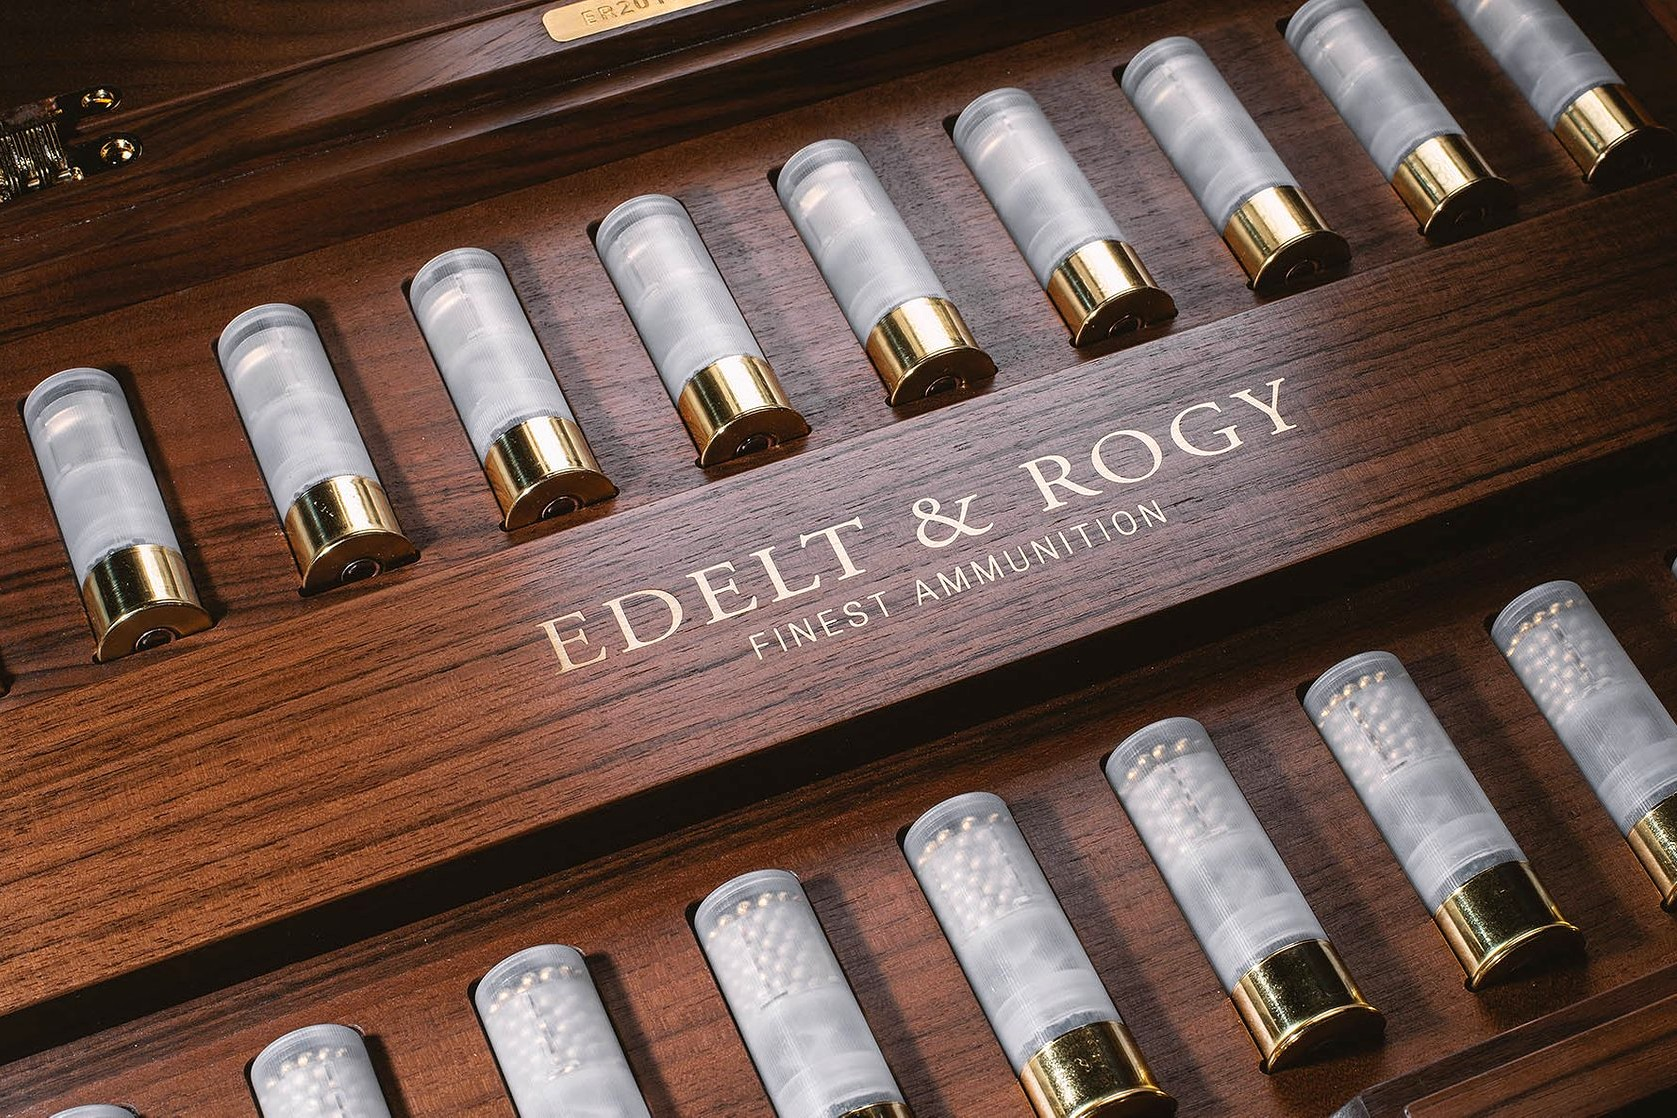 The top 10 most expensive things in the world to buy: Finest Ammunition